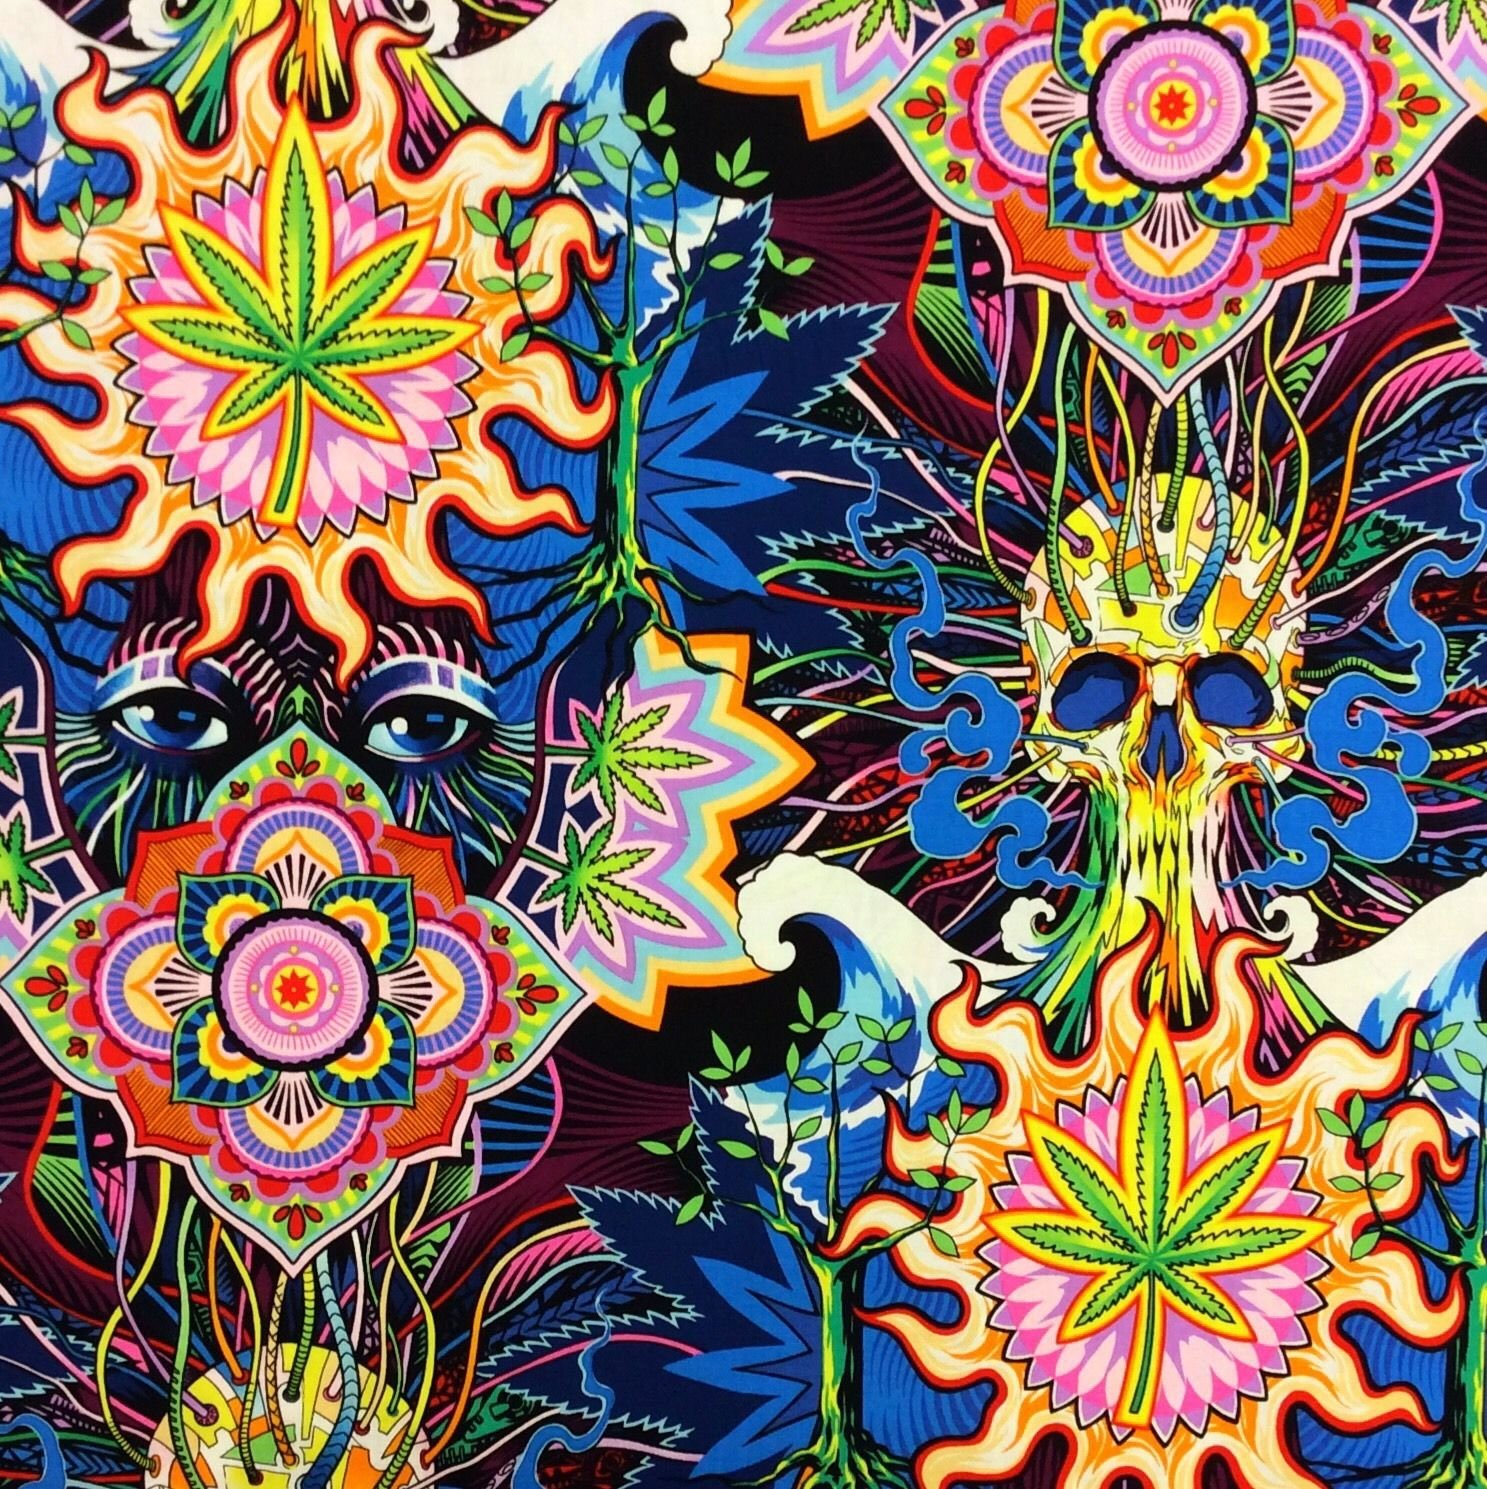 Marijuana Pot Psychedelic Acid Trip Skull Purple Haze Weed Stoner 4:20 Cotton Quilting Fabric AH191